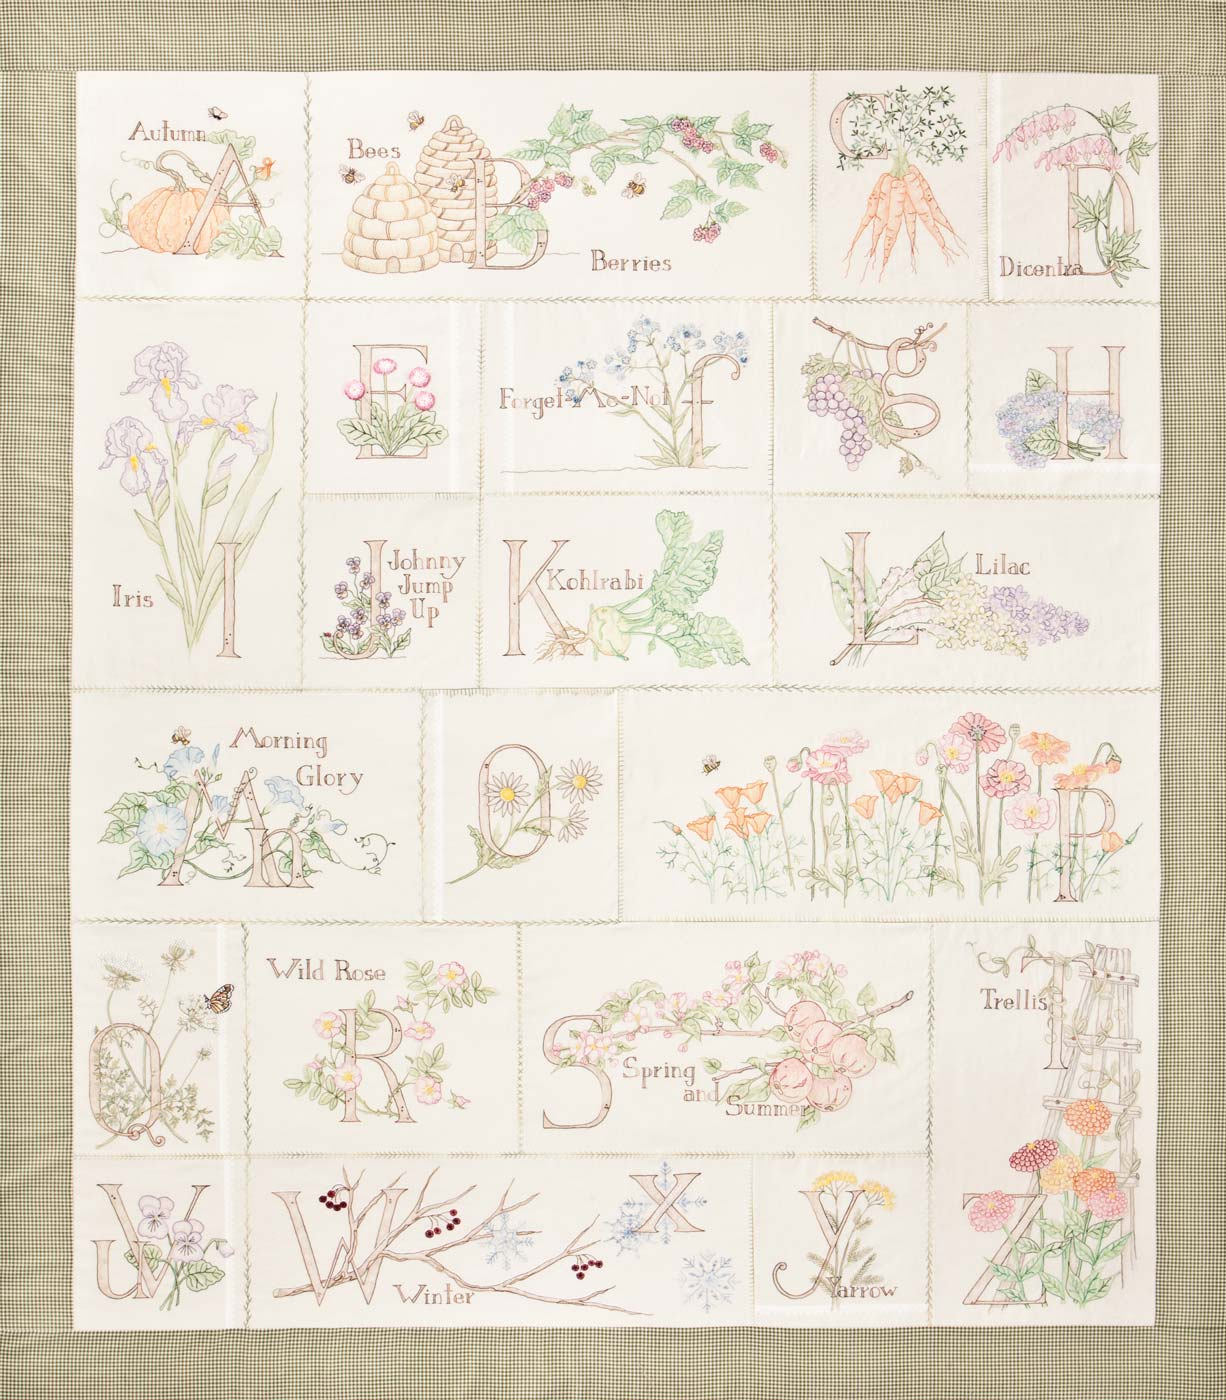 Embroidery Alphabet Patterns A Gardeners Alphabet Block Of The Month